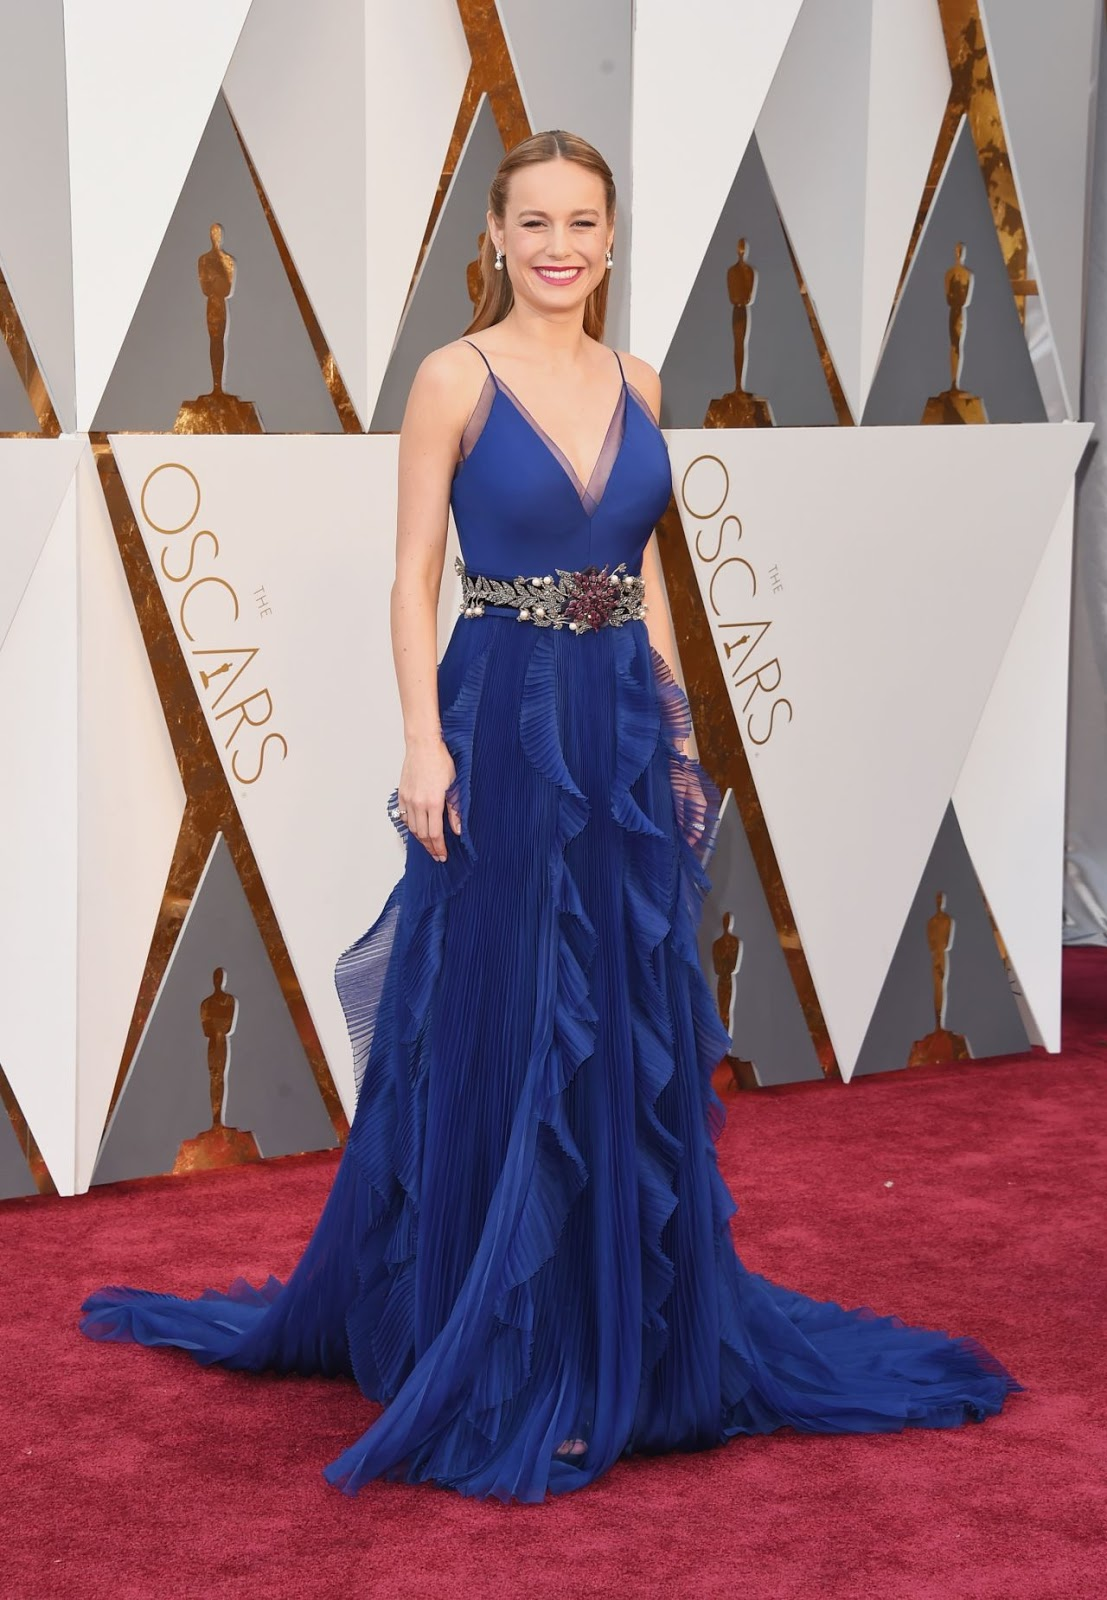 Brie Larson stuns in bold blue at the Oscars 2016